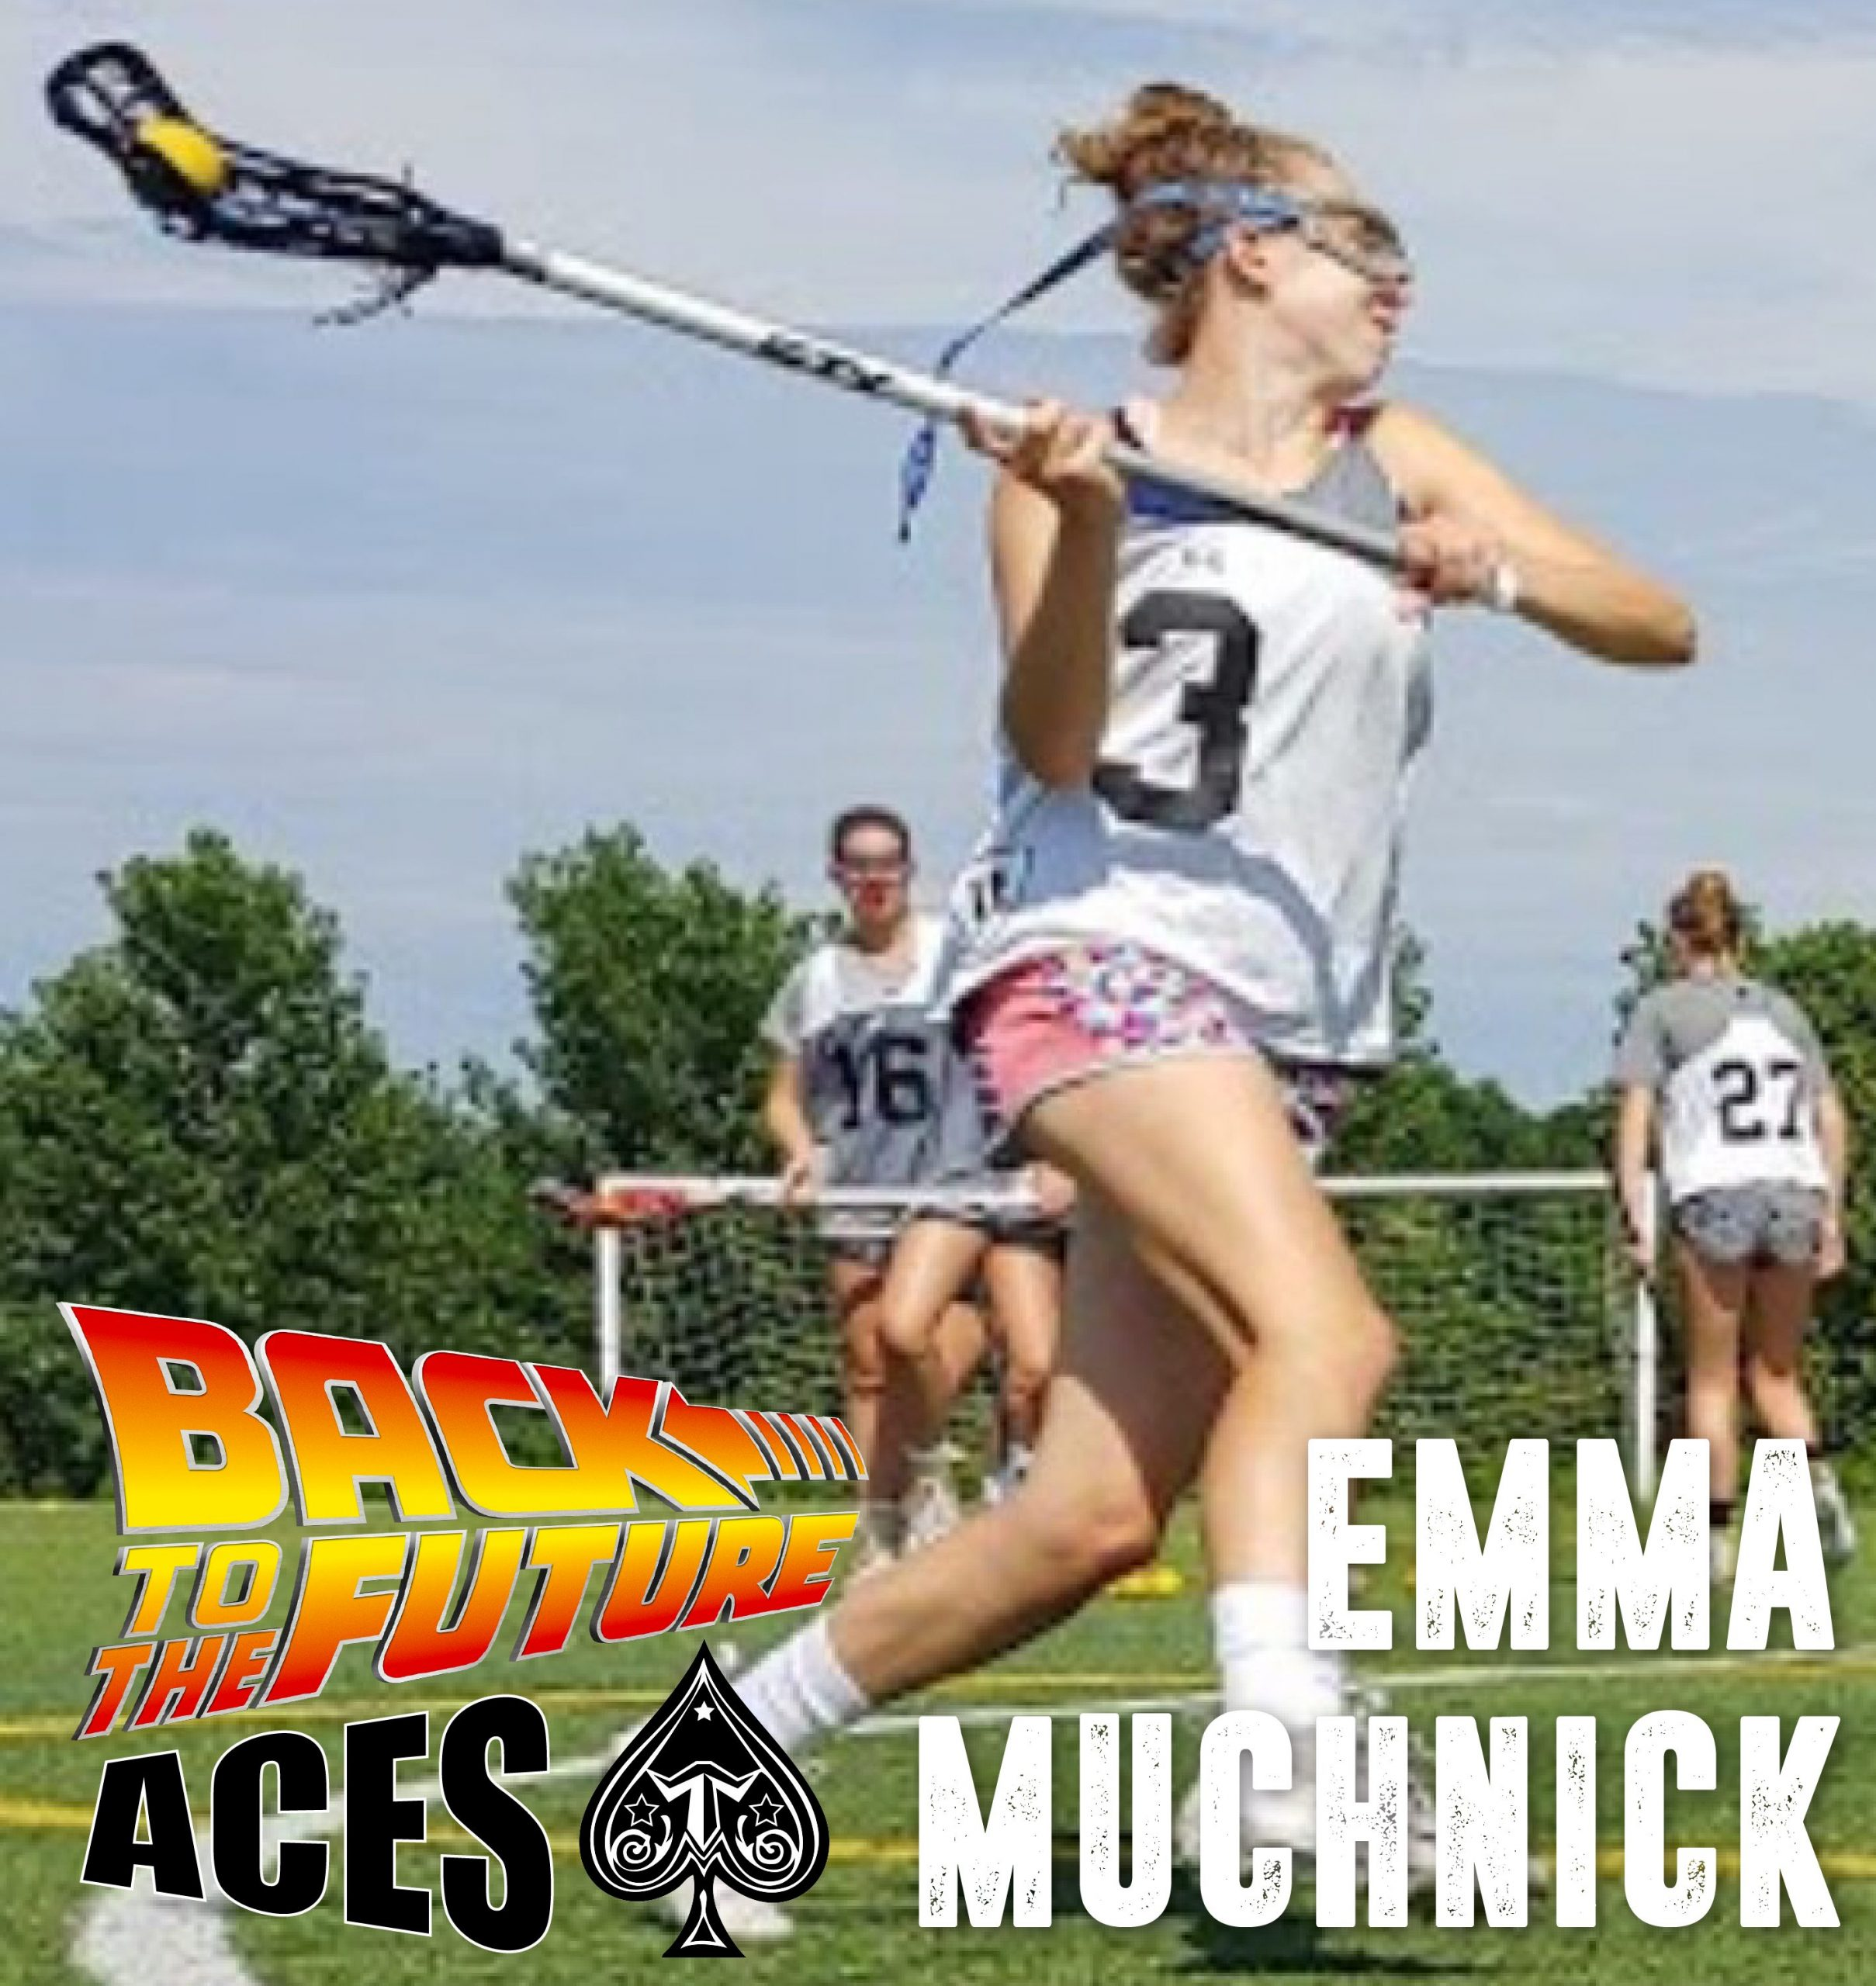 Back to Future Aces Muchnick